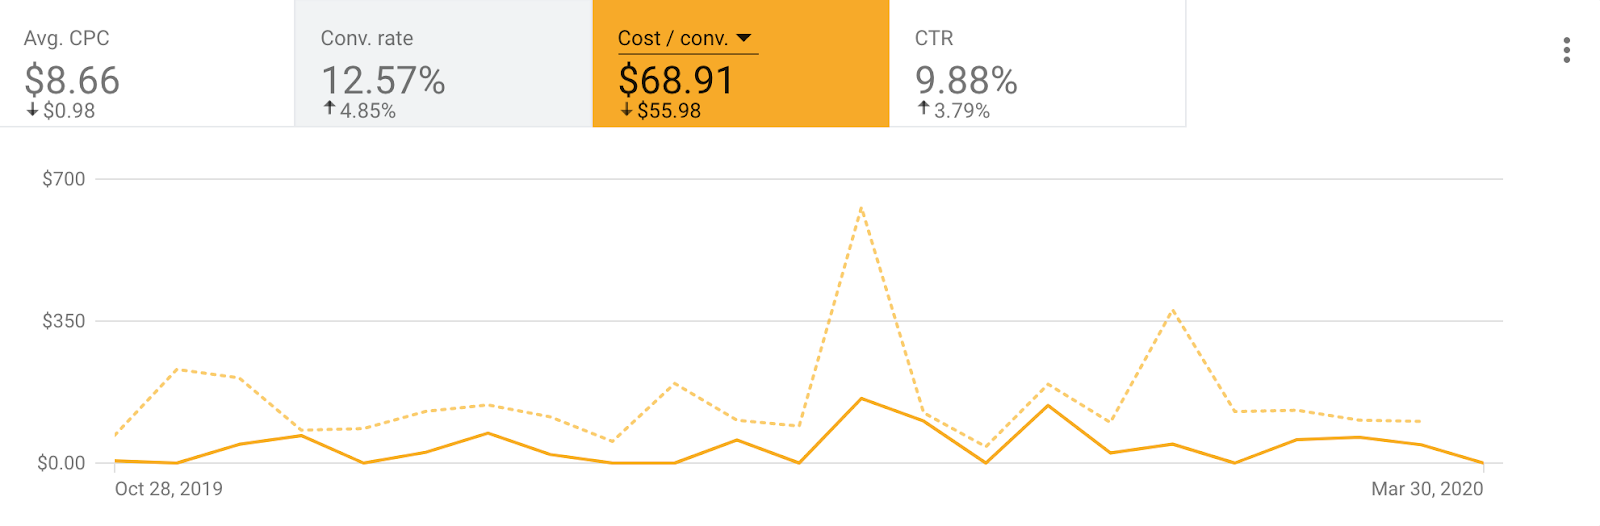 45% decrease in cost per conversion.